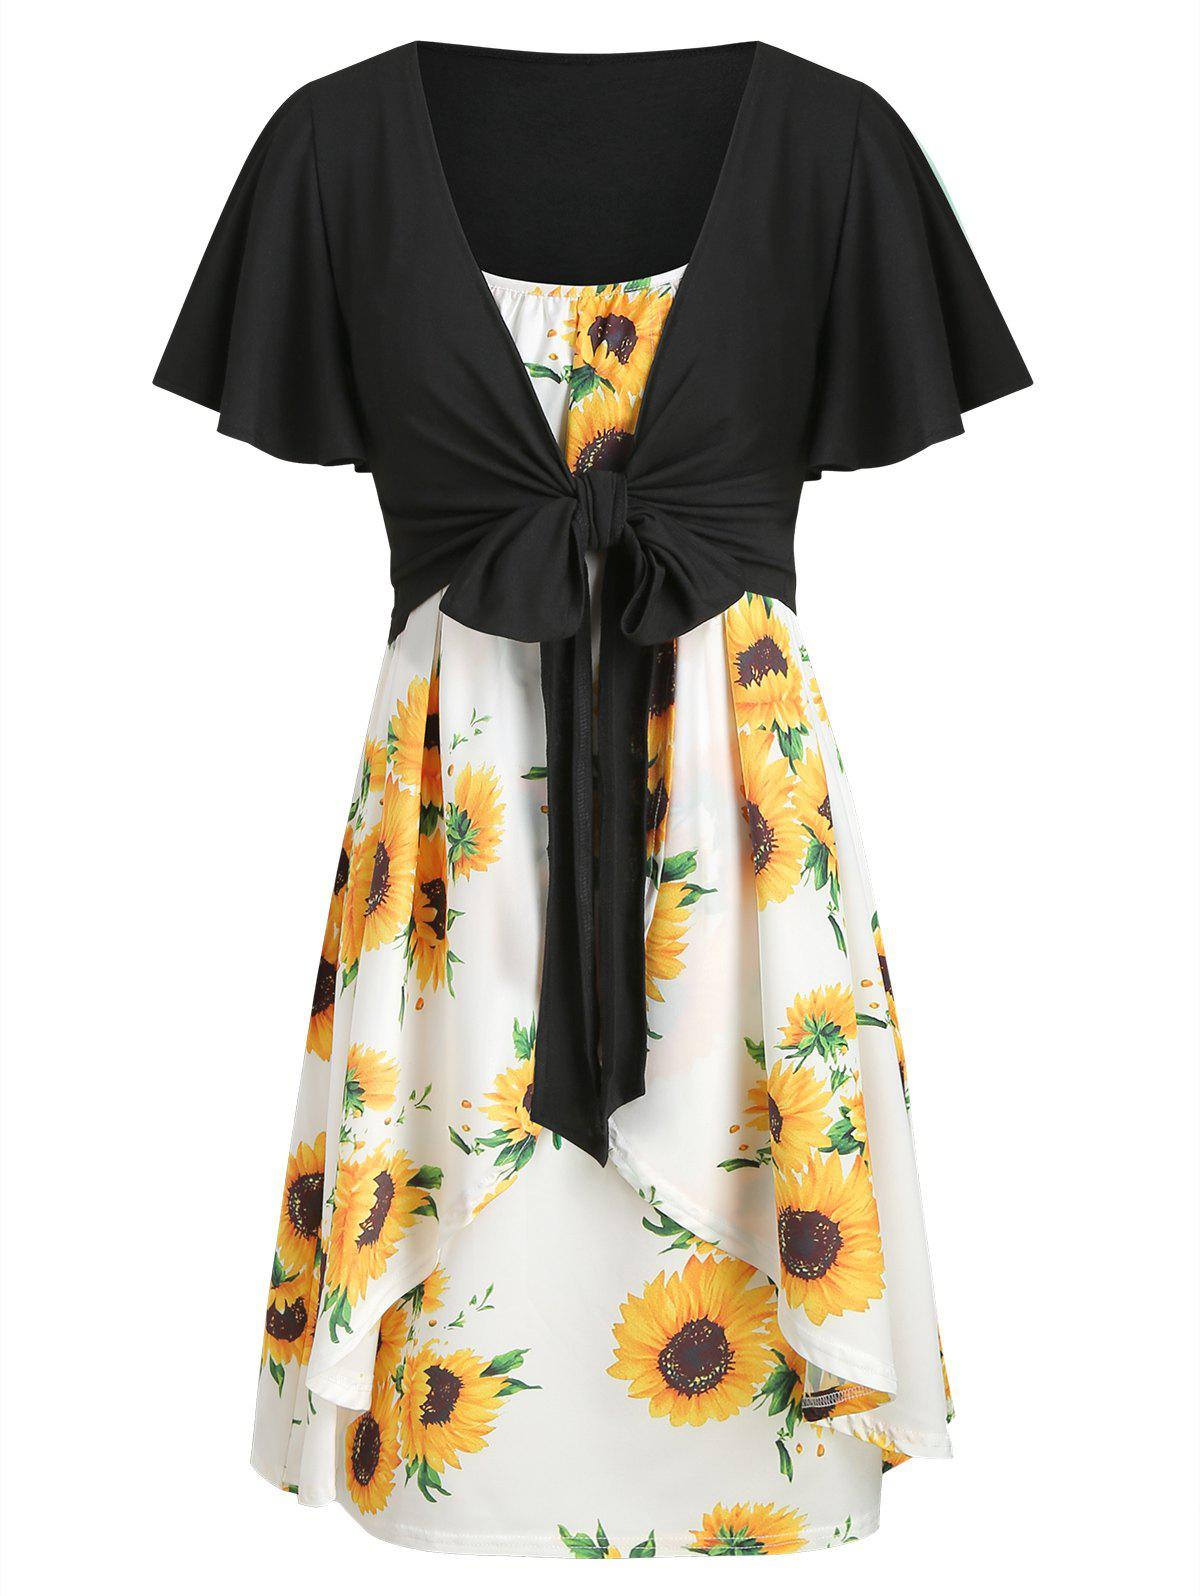 Outfits Knotted Top and Sunflower Overlap Dress Set